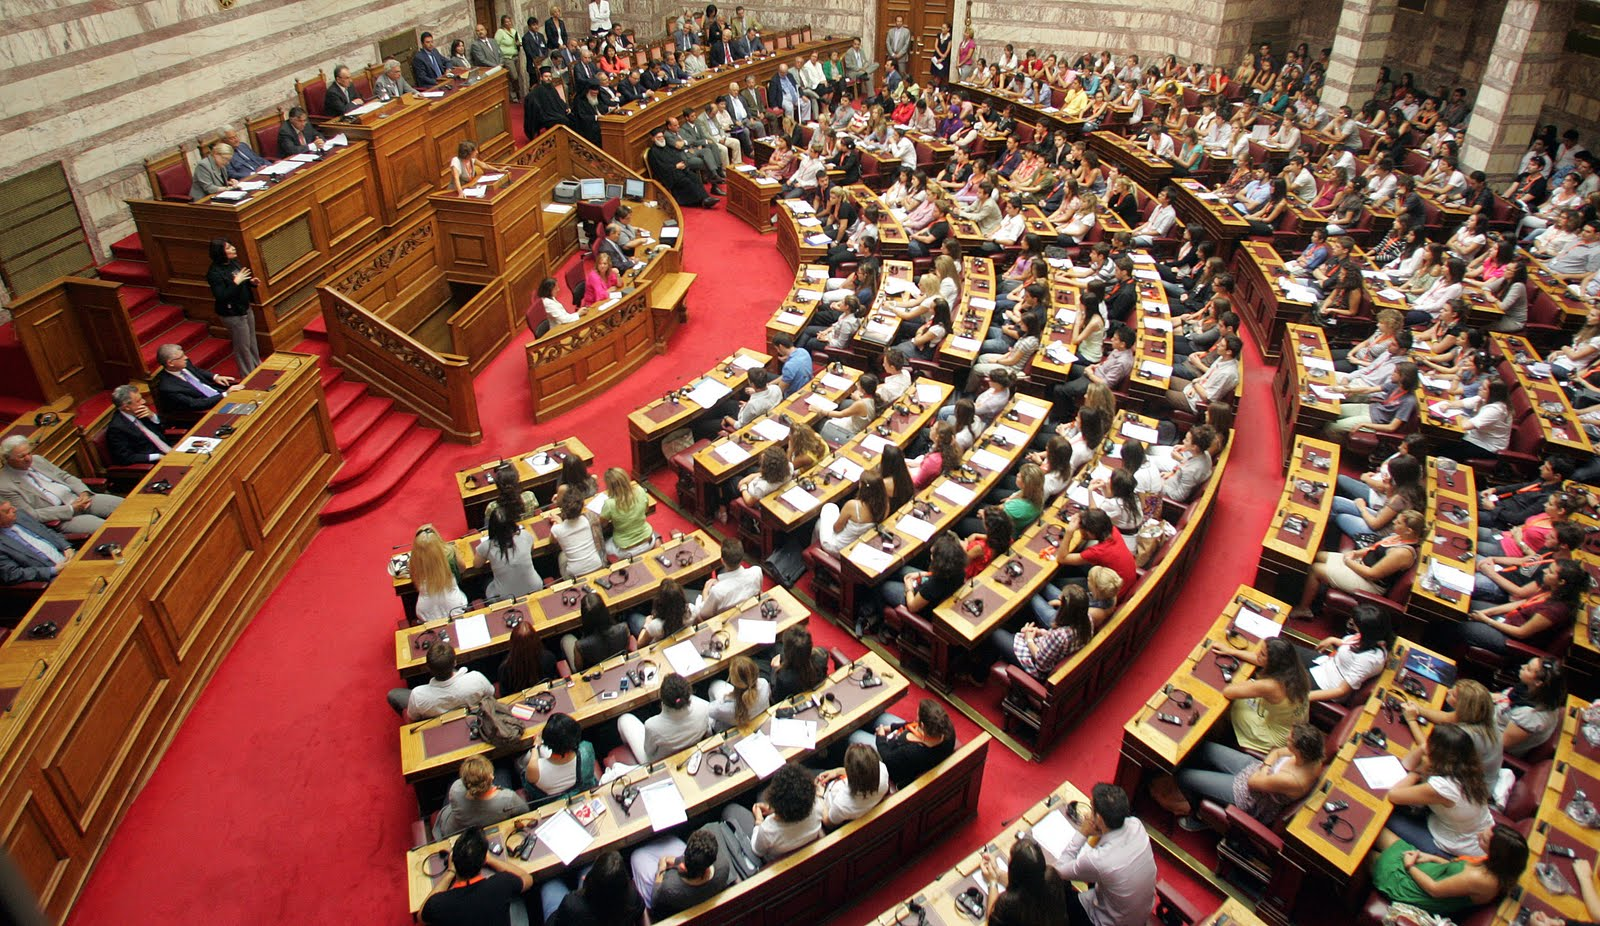 The House to discuss but not vote the loan agreement